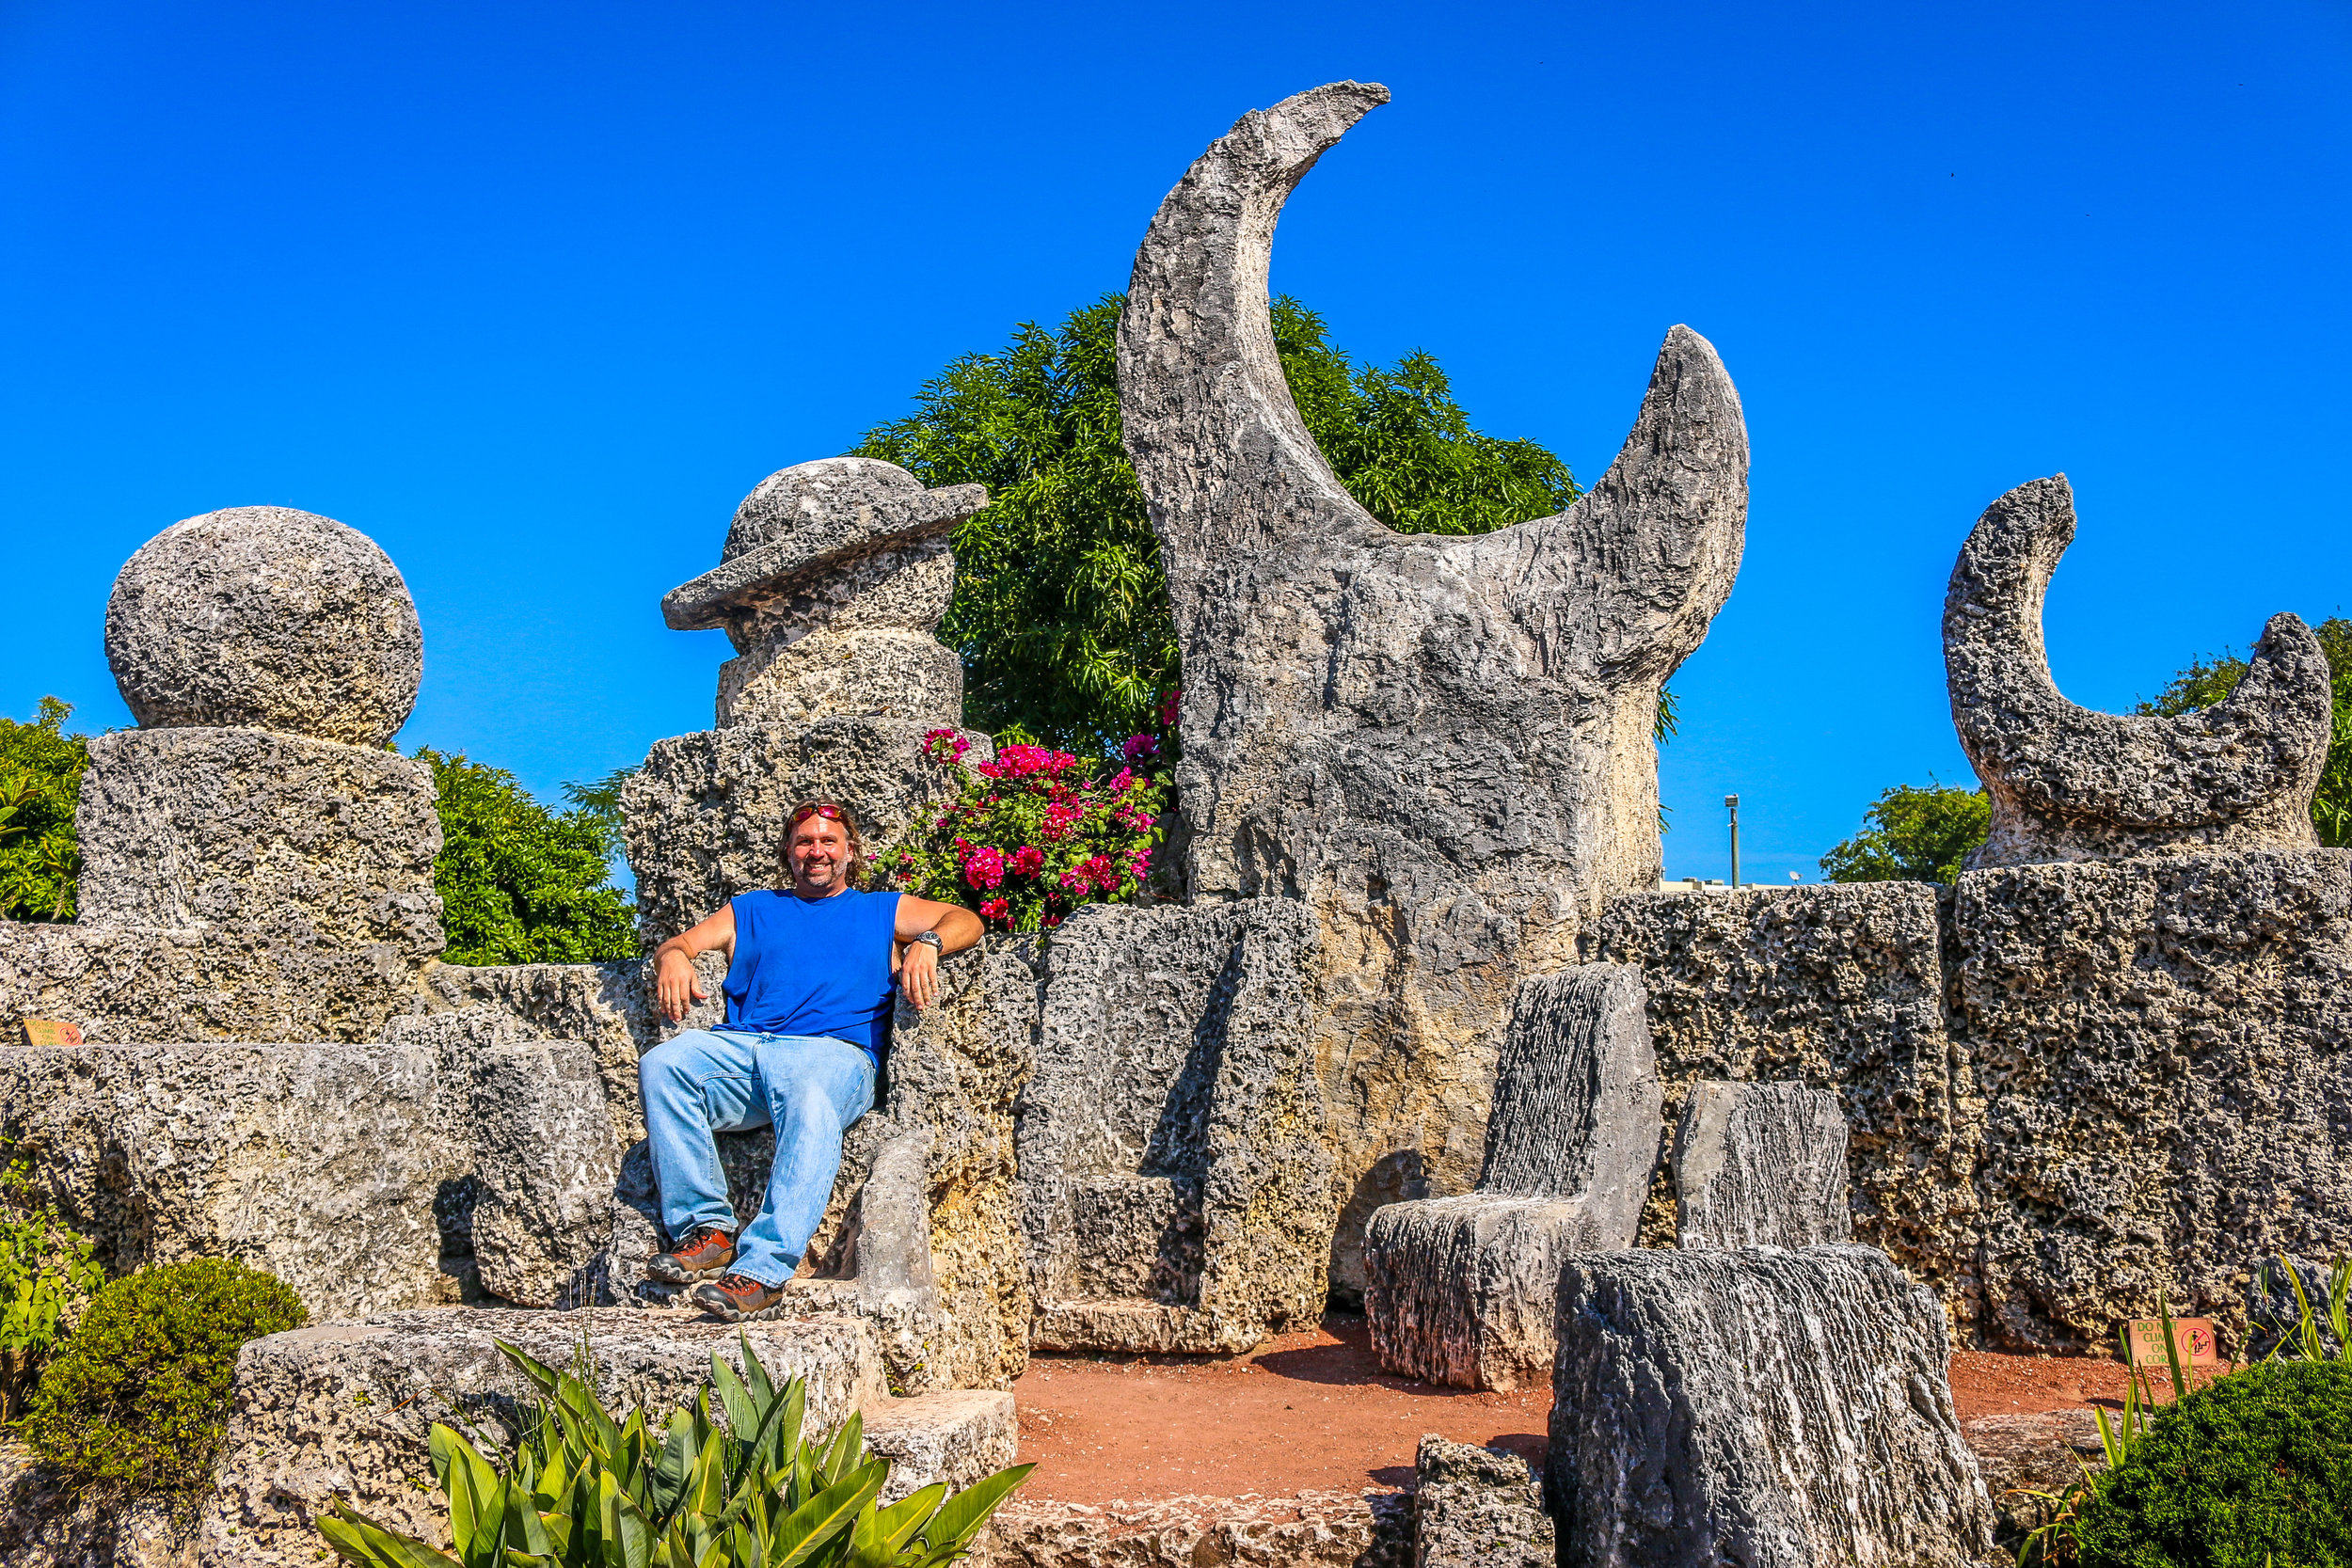 On the Thrown in Coral Castle